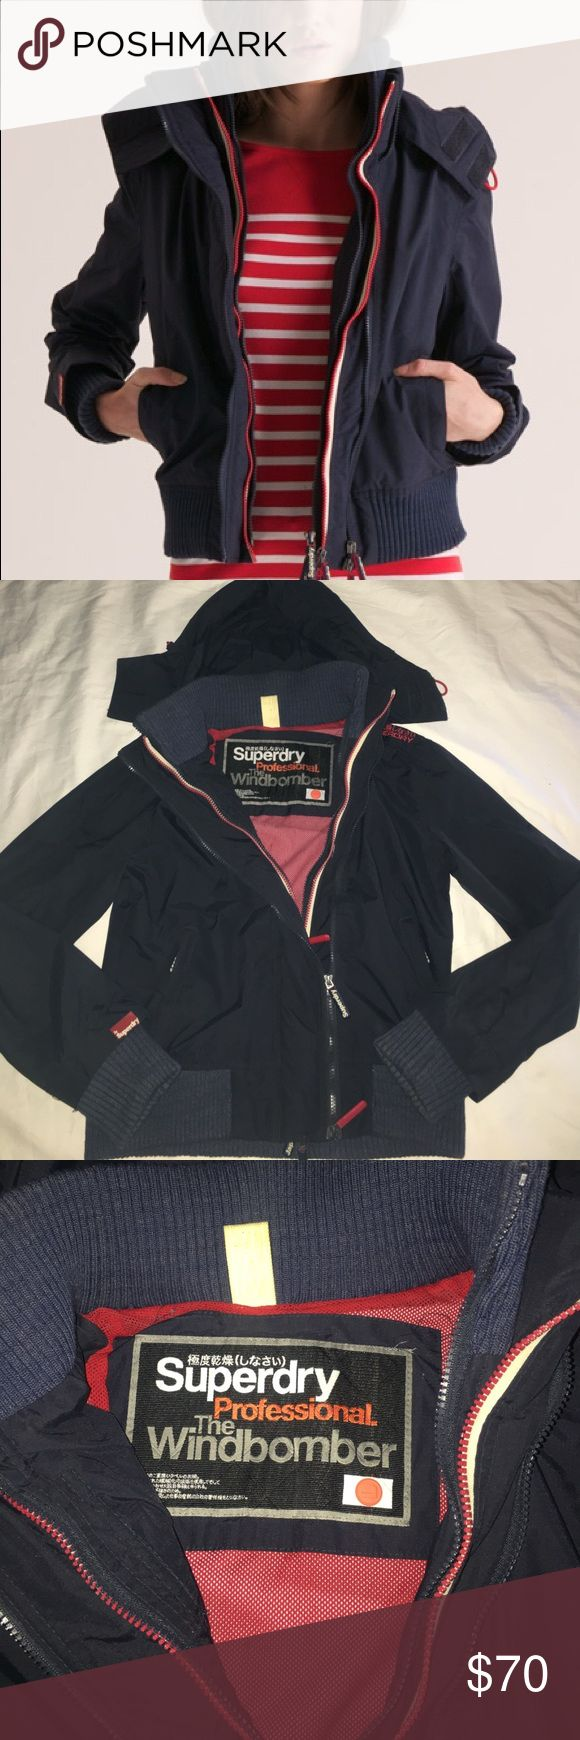 Superdry The Windbomber Hooded Jacket Great condition! Navy Blue and Red. Says size Large but fits a Medium better! Very snug Superdry Jackets & Coats